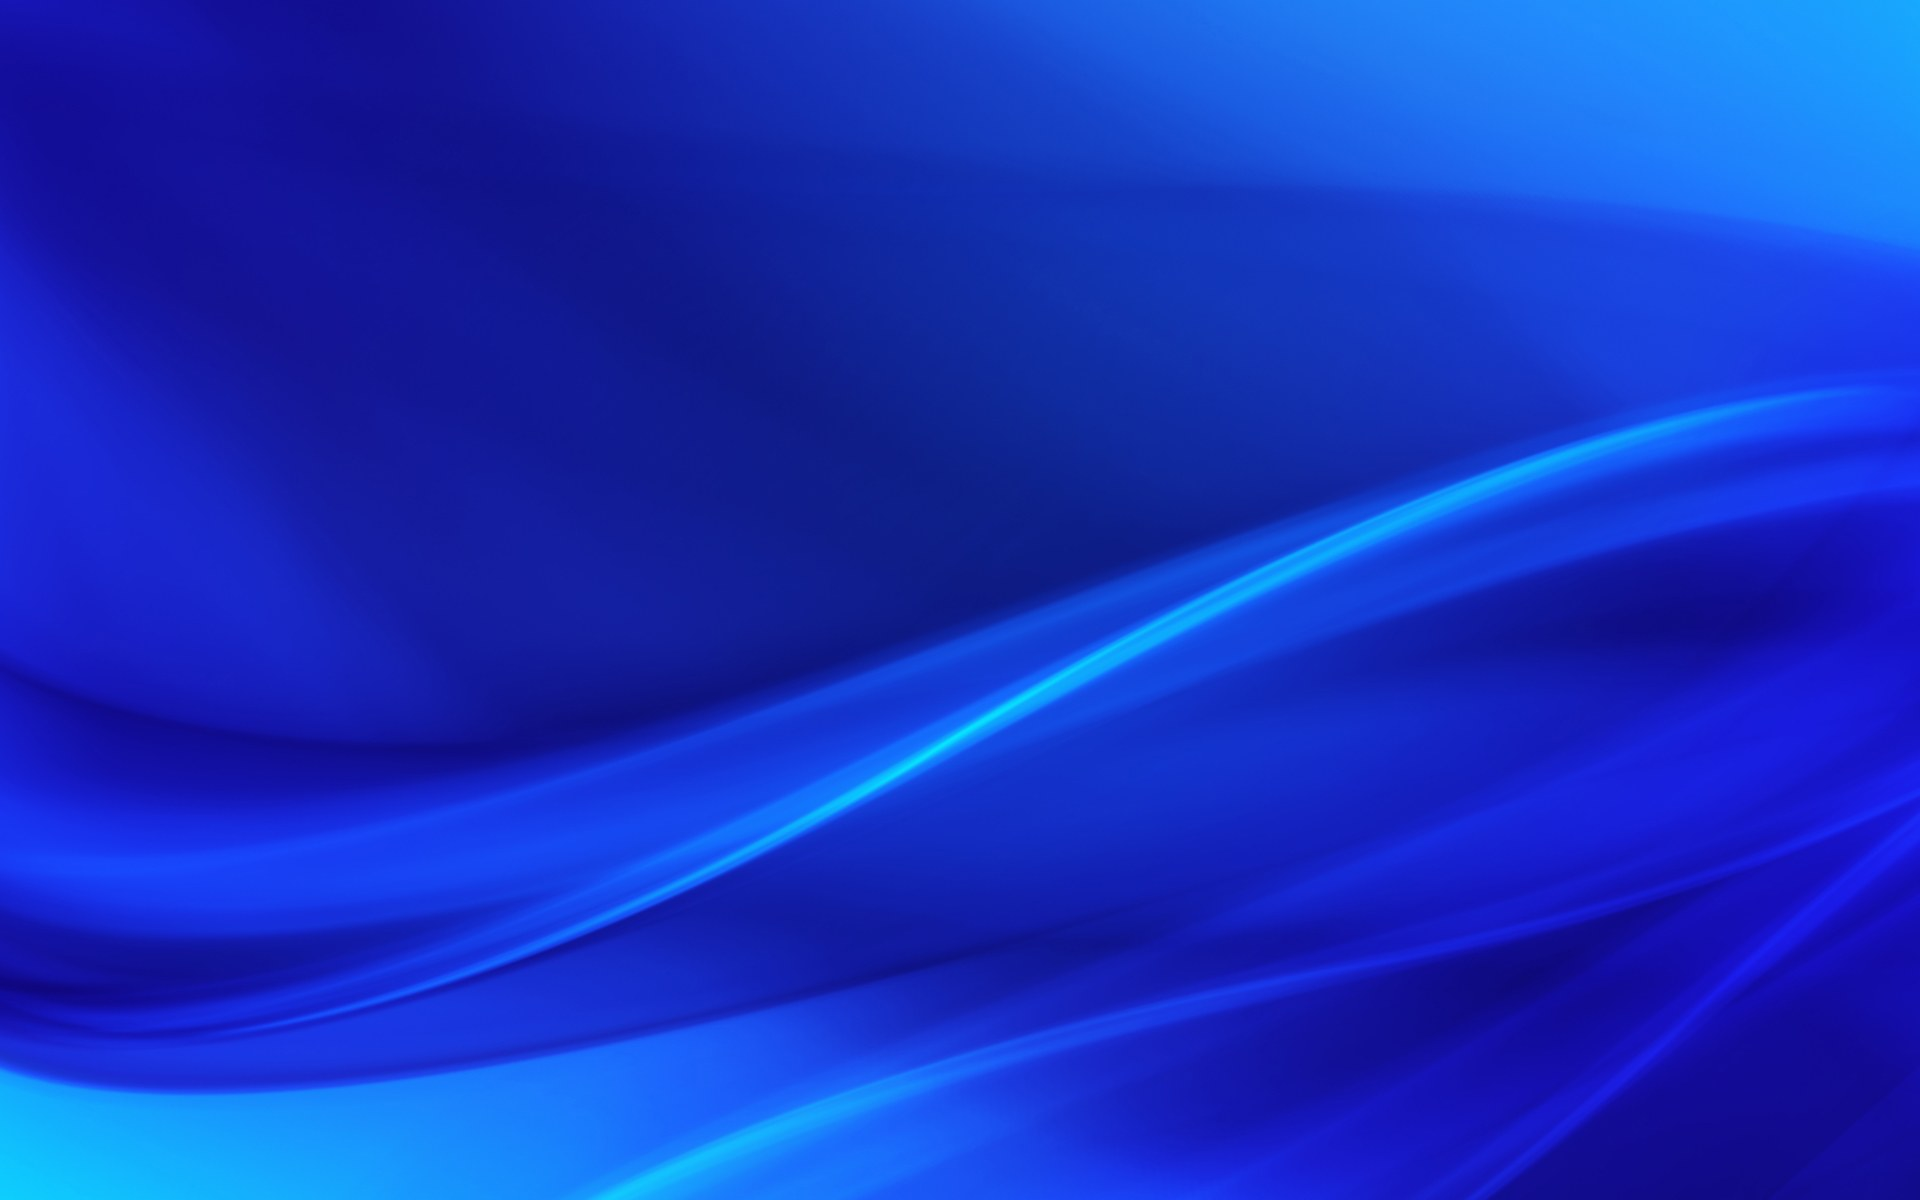 Download Wallpaper High Quality Blue - blue-colour_034211245  Trends_279570.jpg